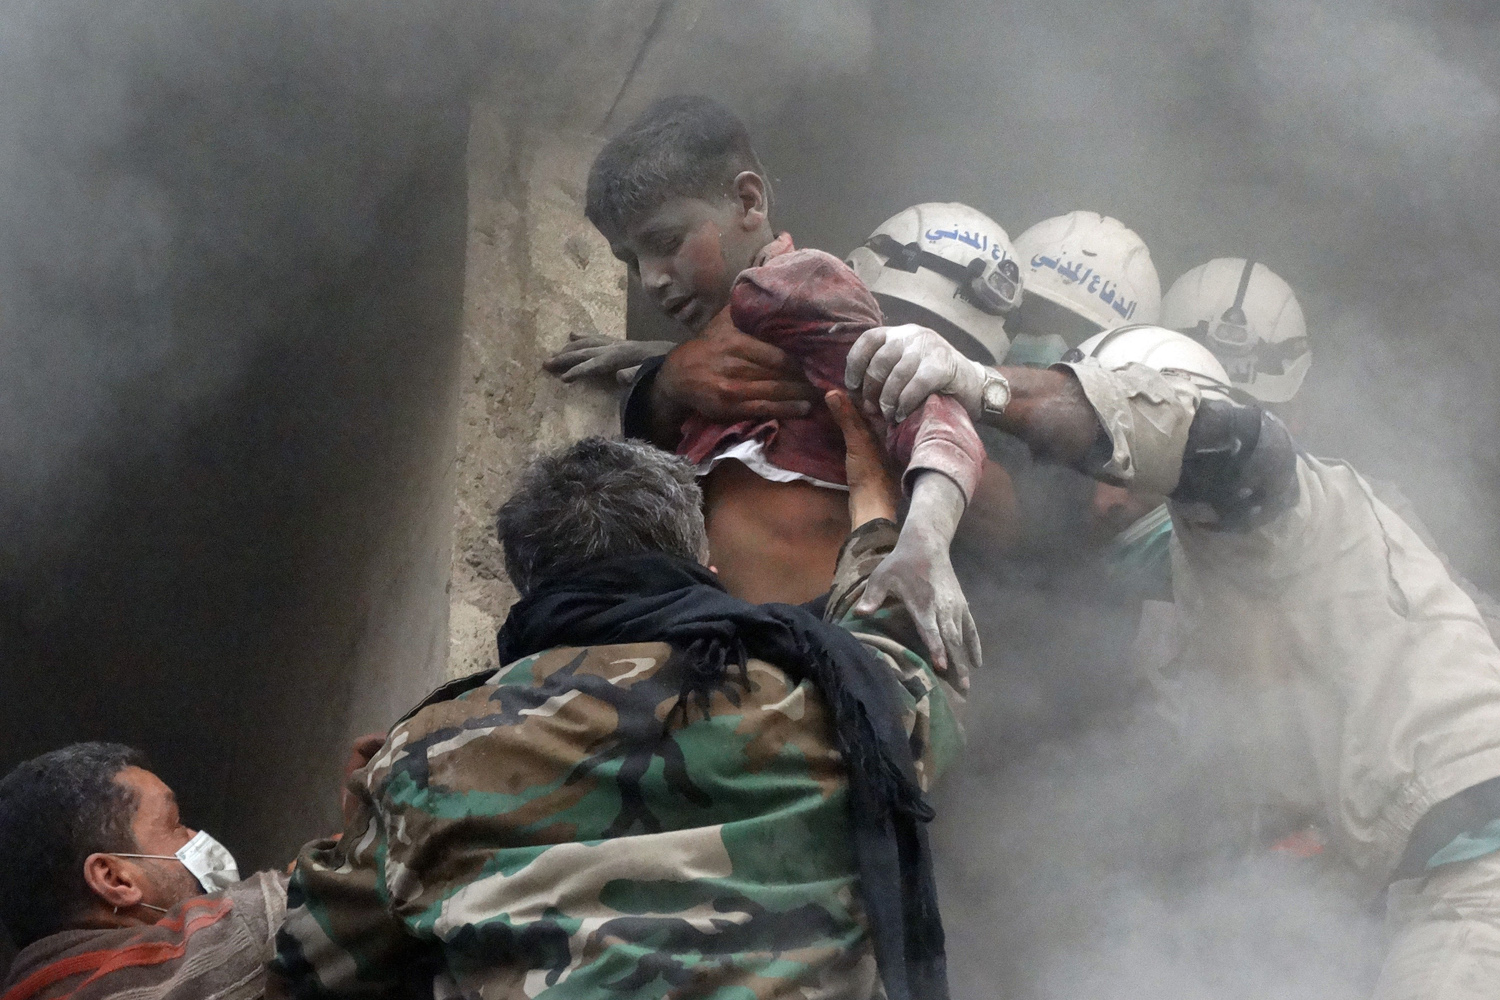 Apr. 6, 2014. Emergency responders help evacuate a Syrian boy from a residential building reportedly hit by an explosives-filled barrel dropped by a government forces helicopter in the Shaar neighbourhood of the northern Syrian city of Aleppo.